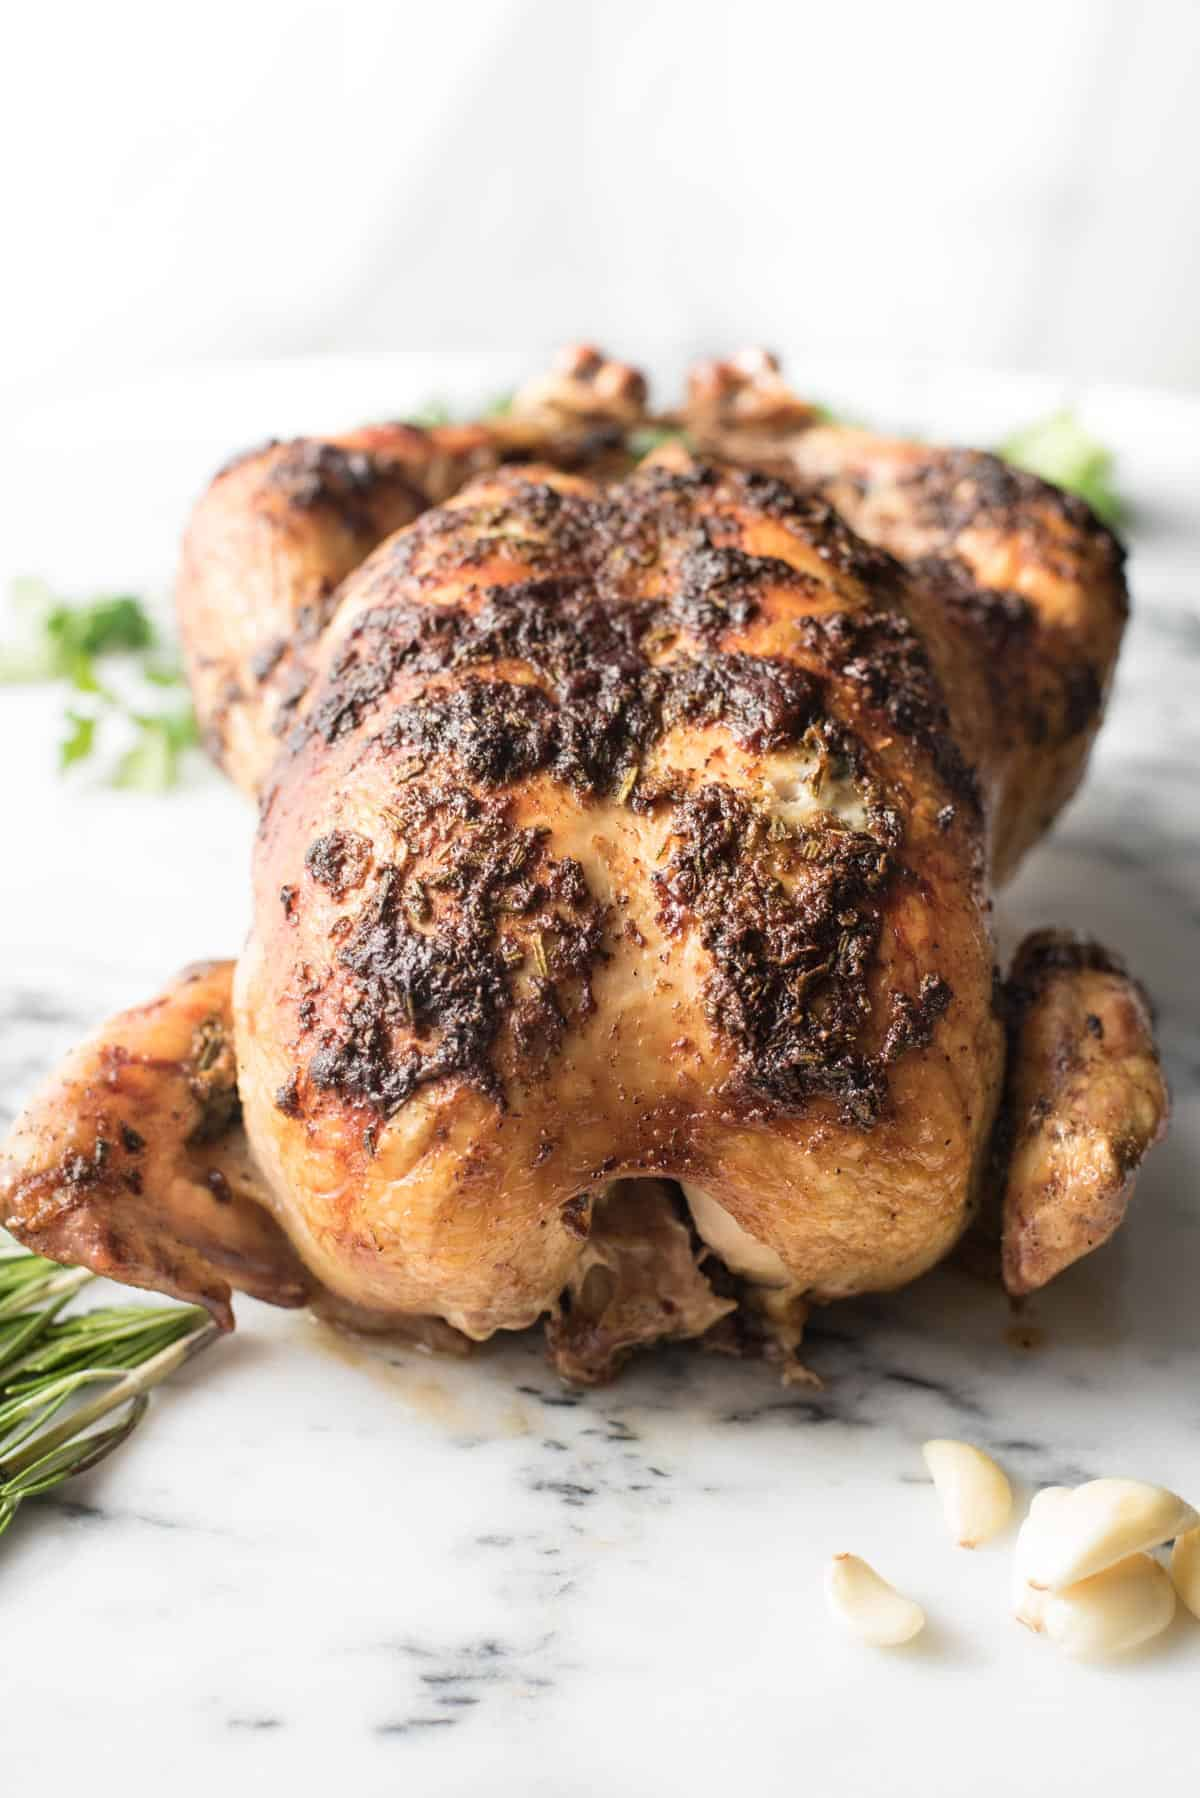 Juiciest Garlic Rosemary Roasted Chicken